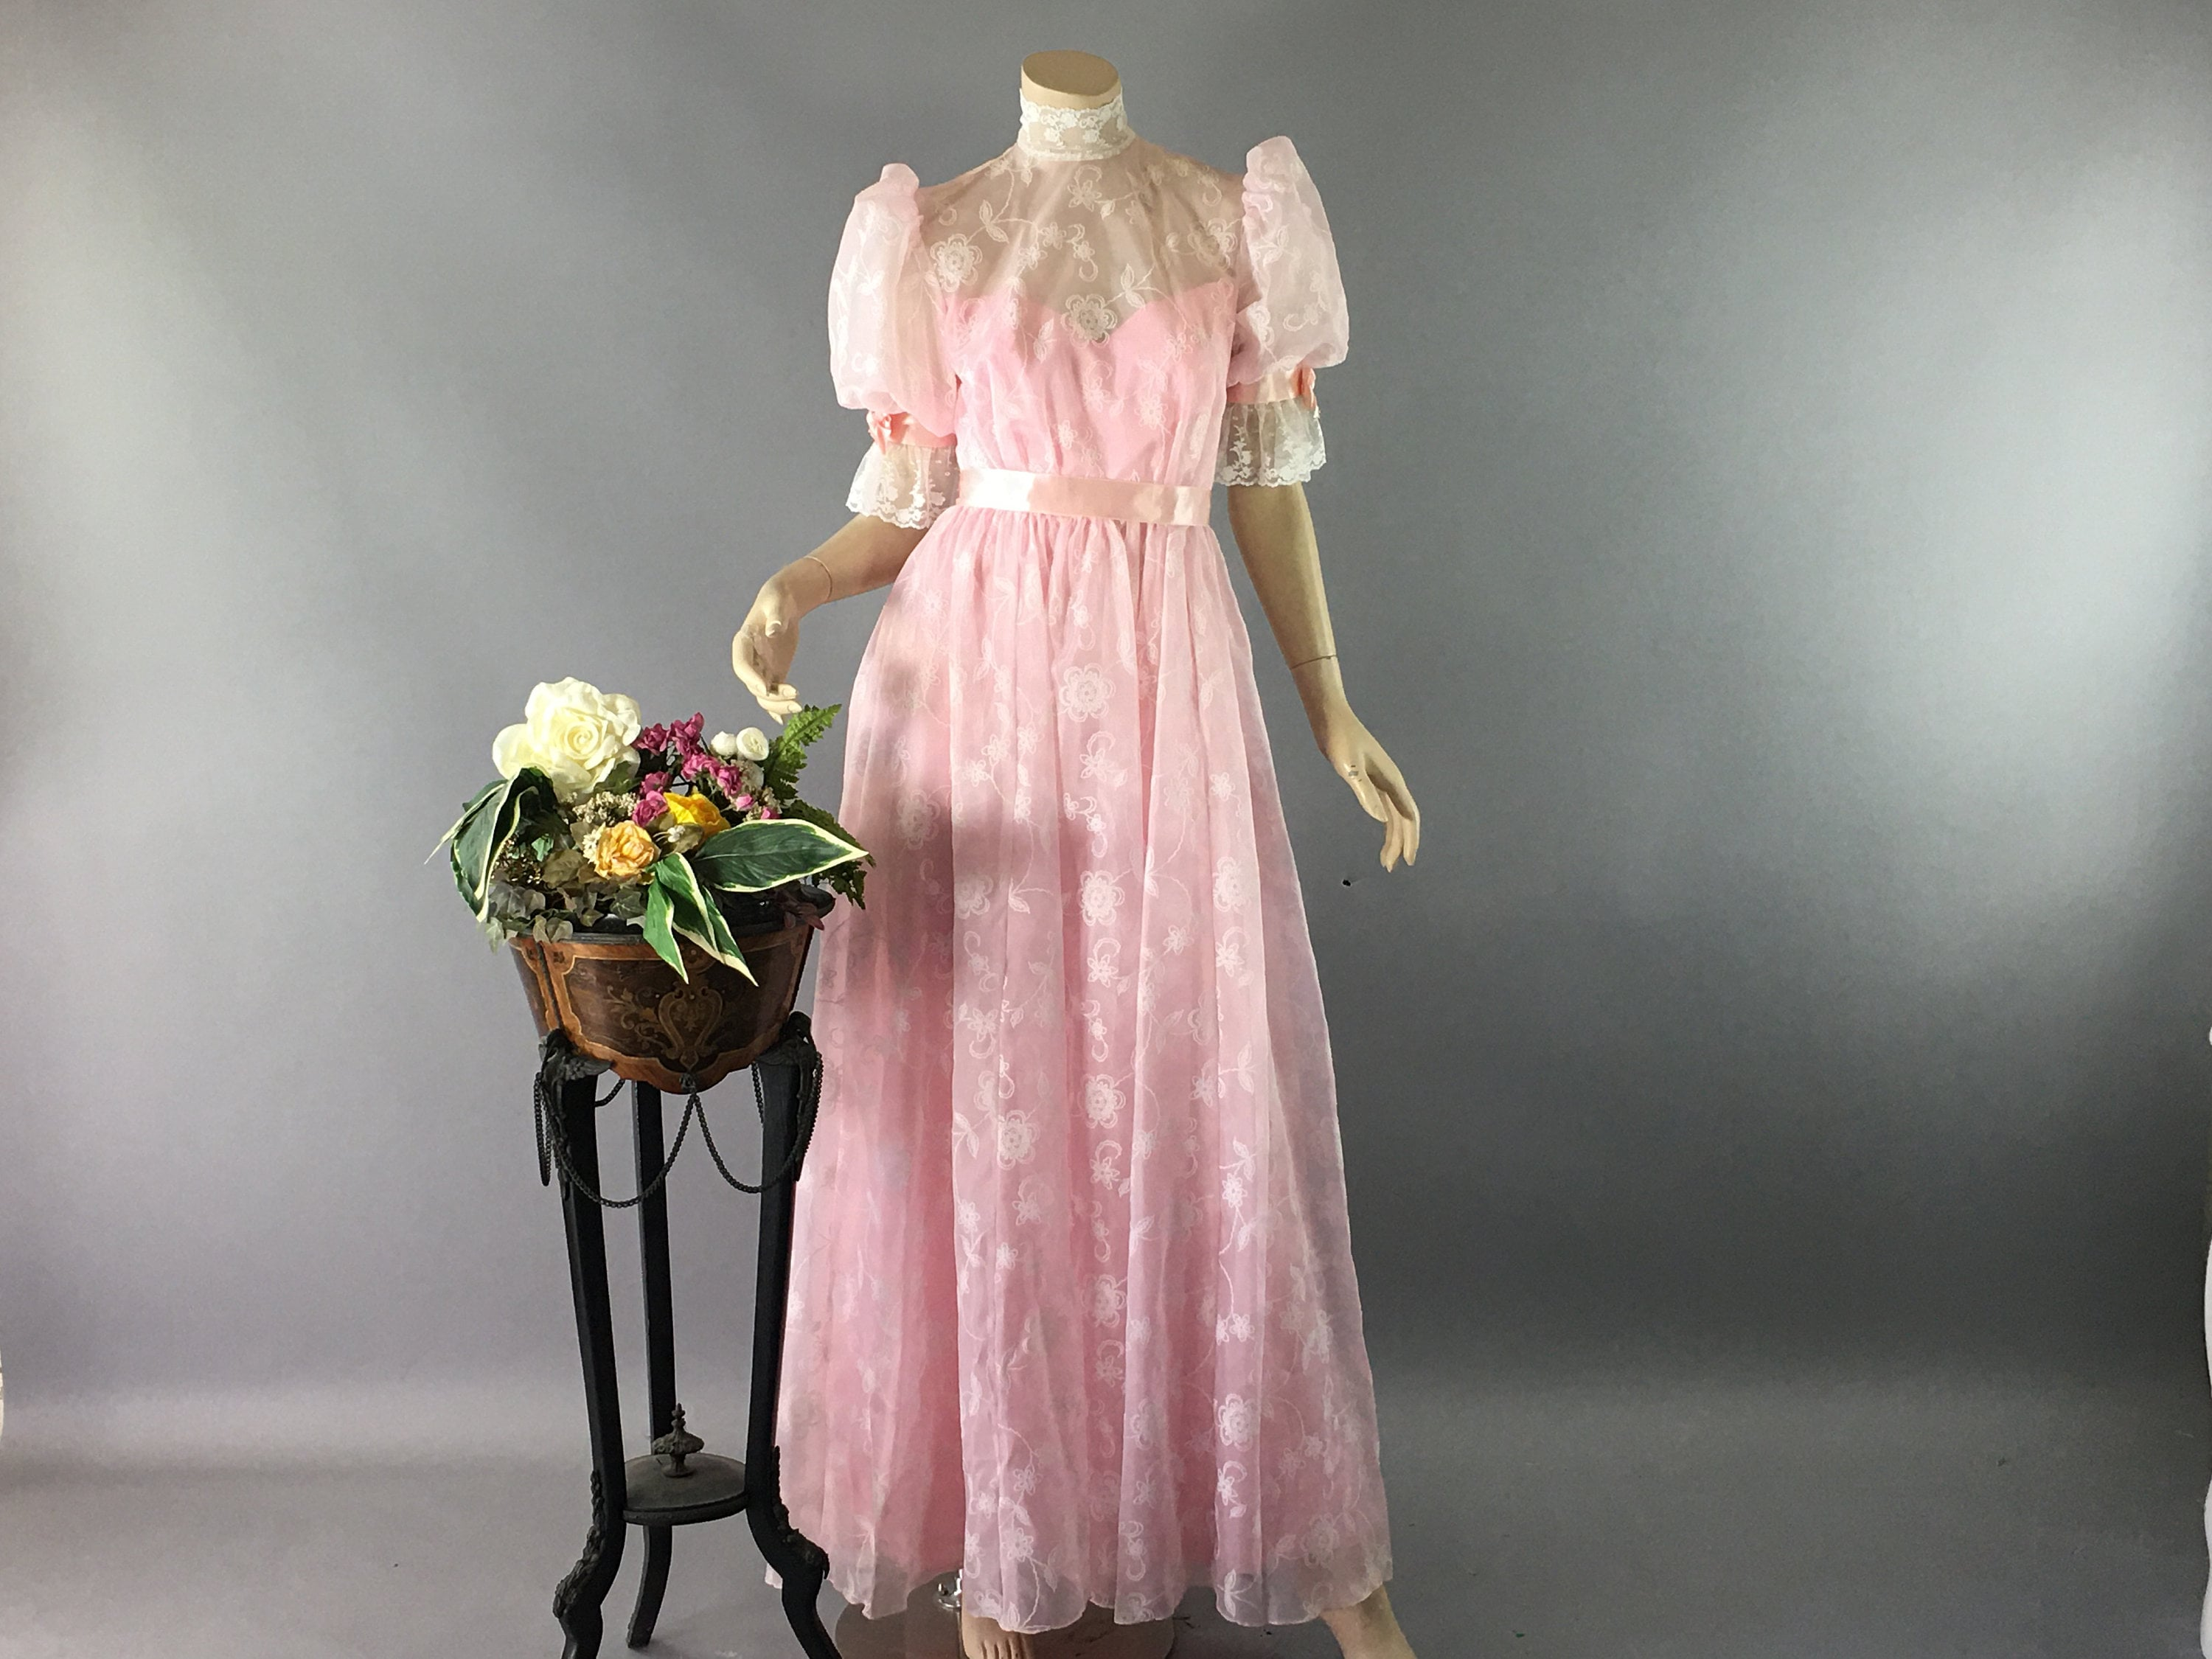 80s Dresses | Casual to Party Dresses Vintage 1980S Edwardian Style Dress, Xs Cottagecore Pink  White High Neck Lace Prom Puff Sleeve Bridgerton Formal Wear $168.00 AT vintagedancer.com